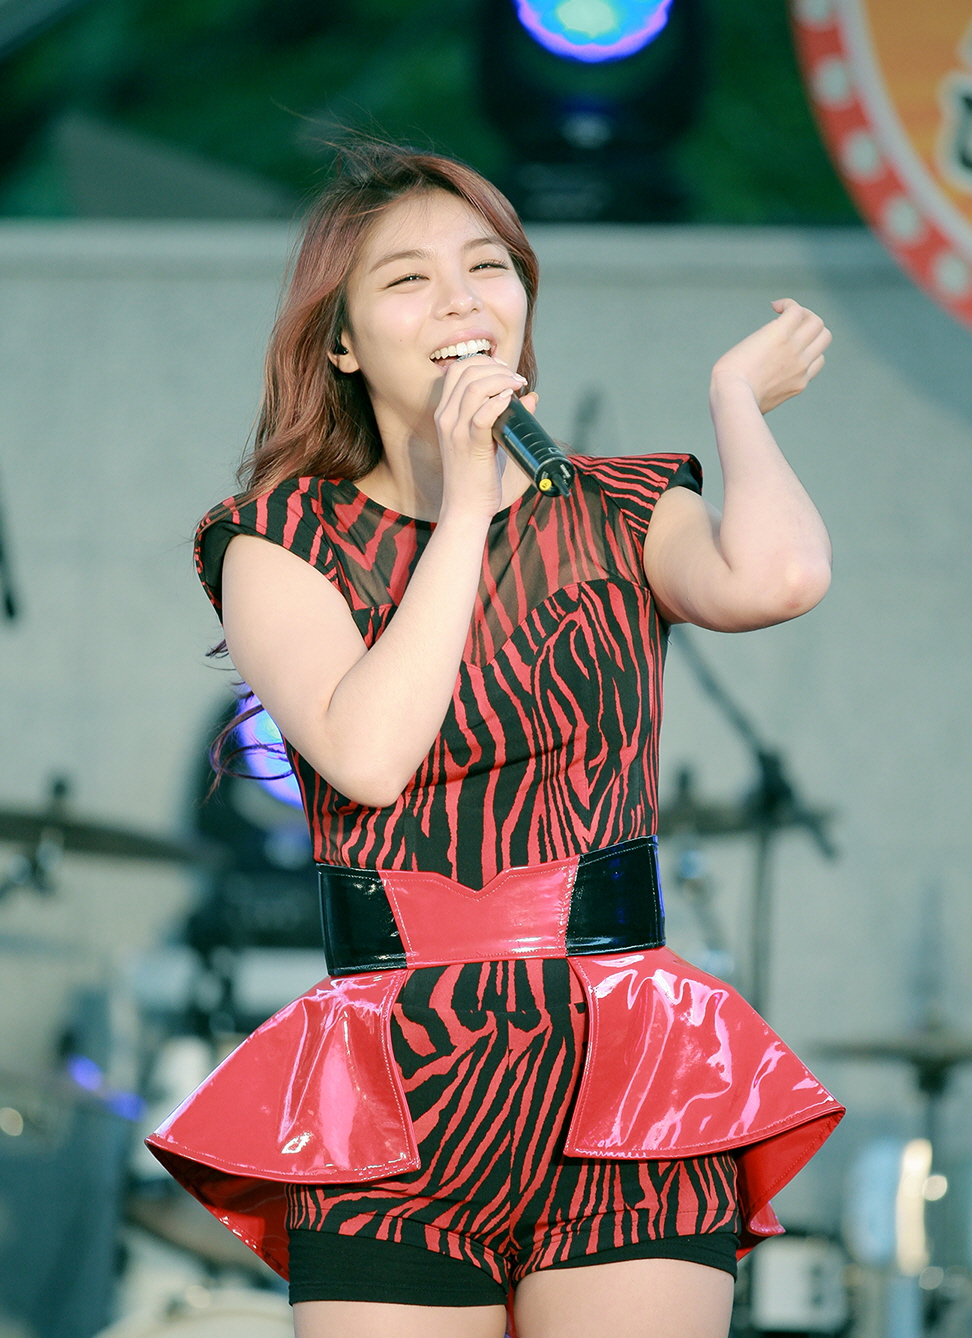 ailee dating 2014